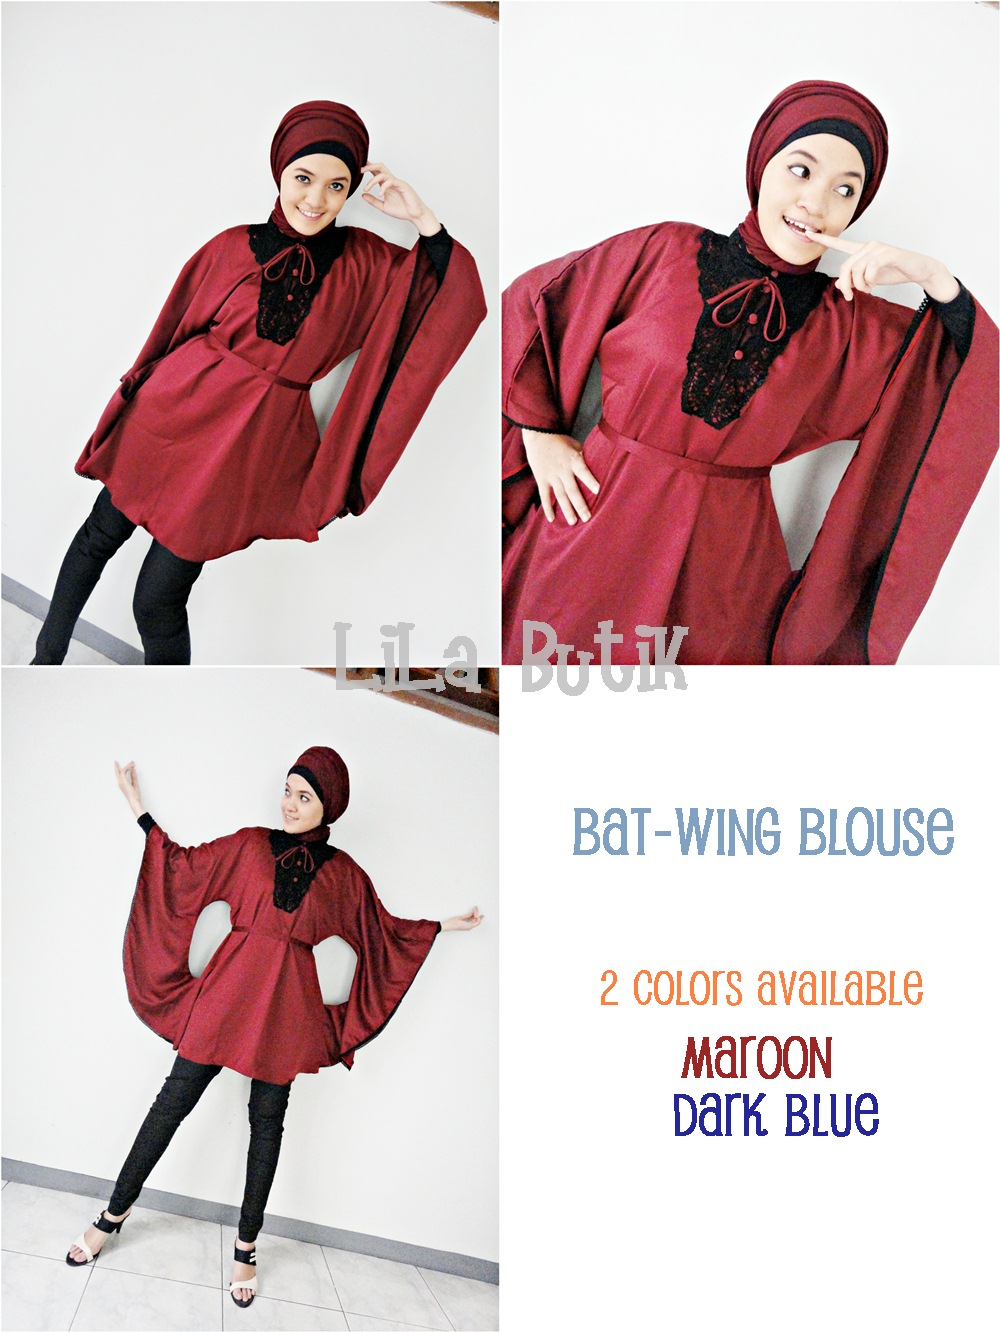 bat-wing-blouse LiLa Butik: Me and My Friend's On-and-Off Online Shop (^____^)v